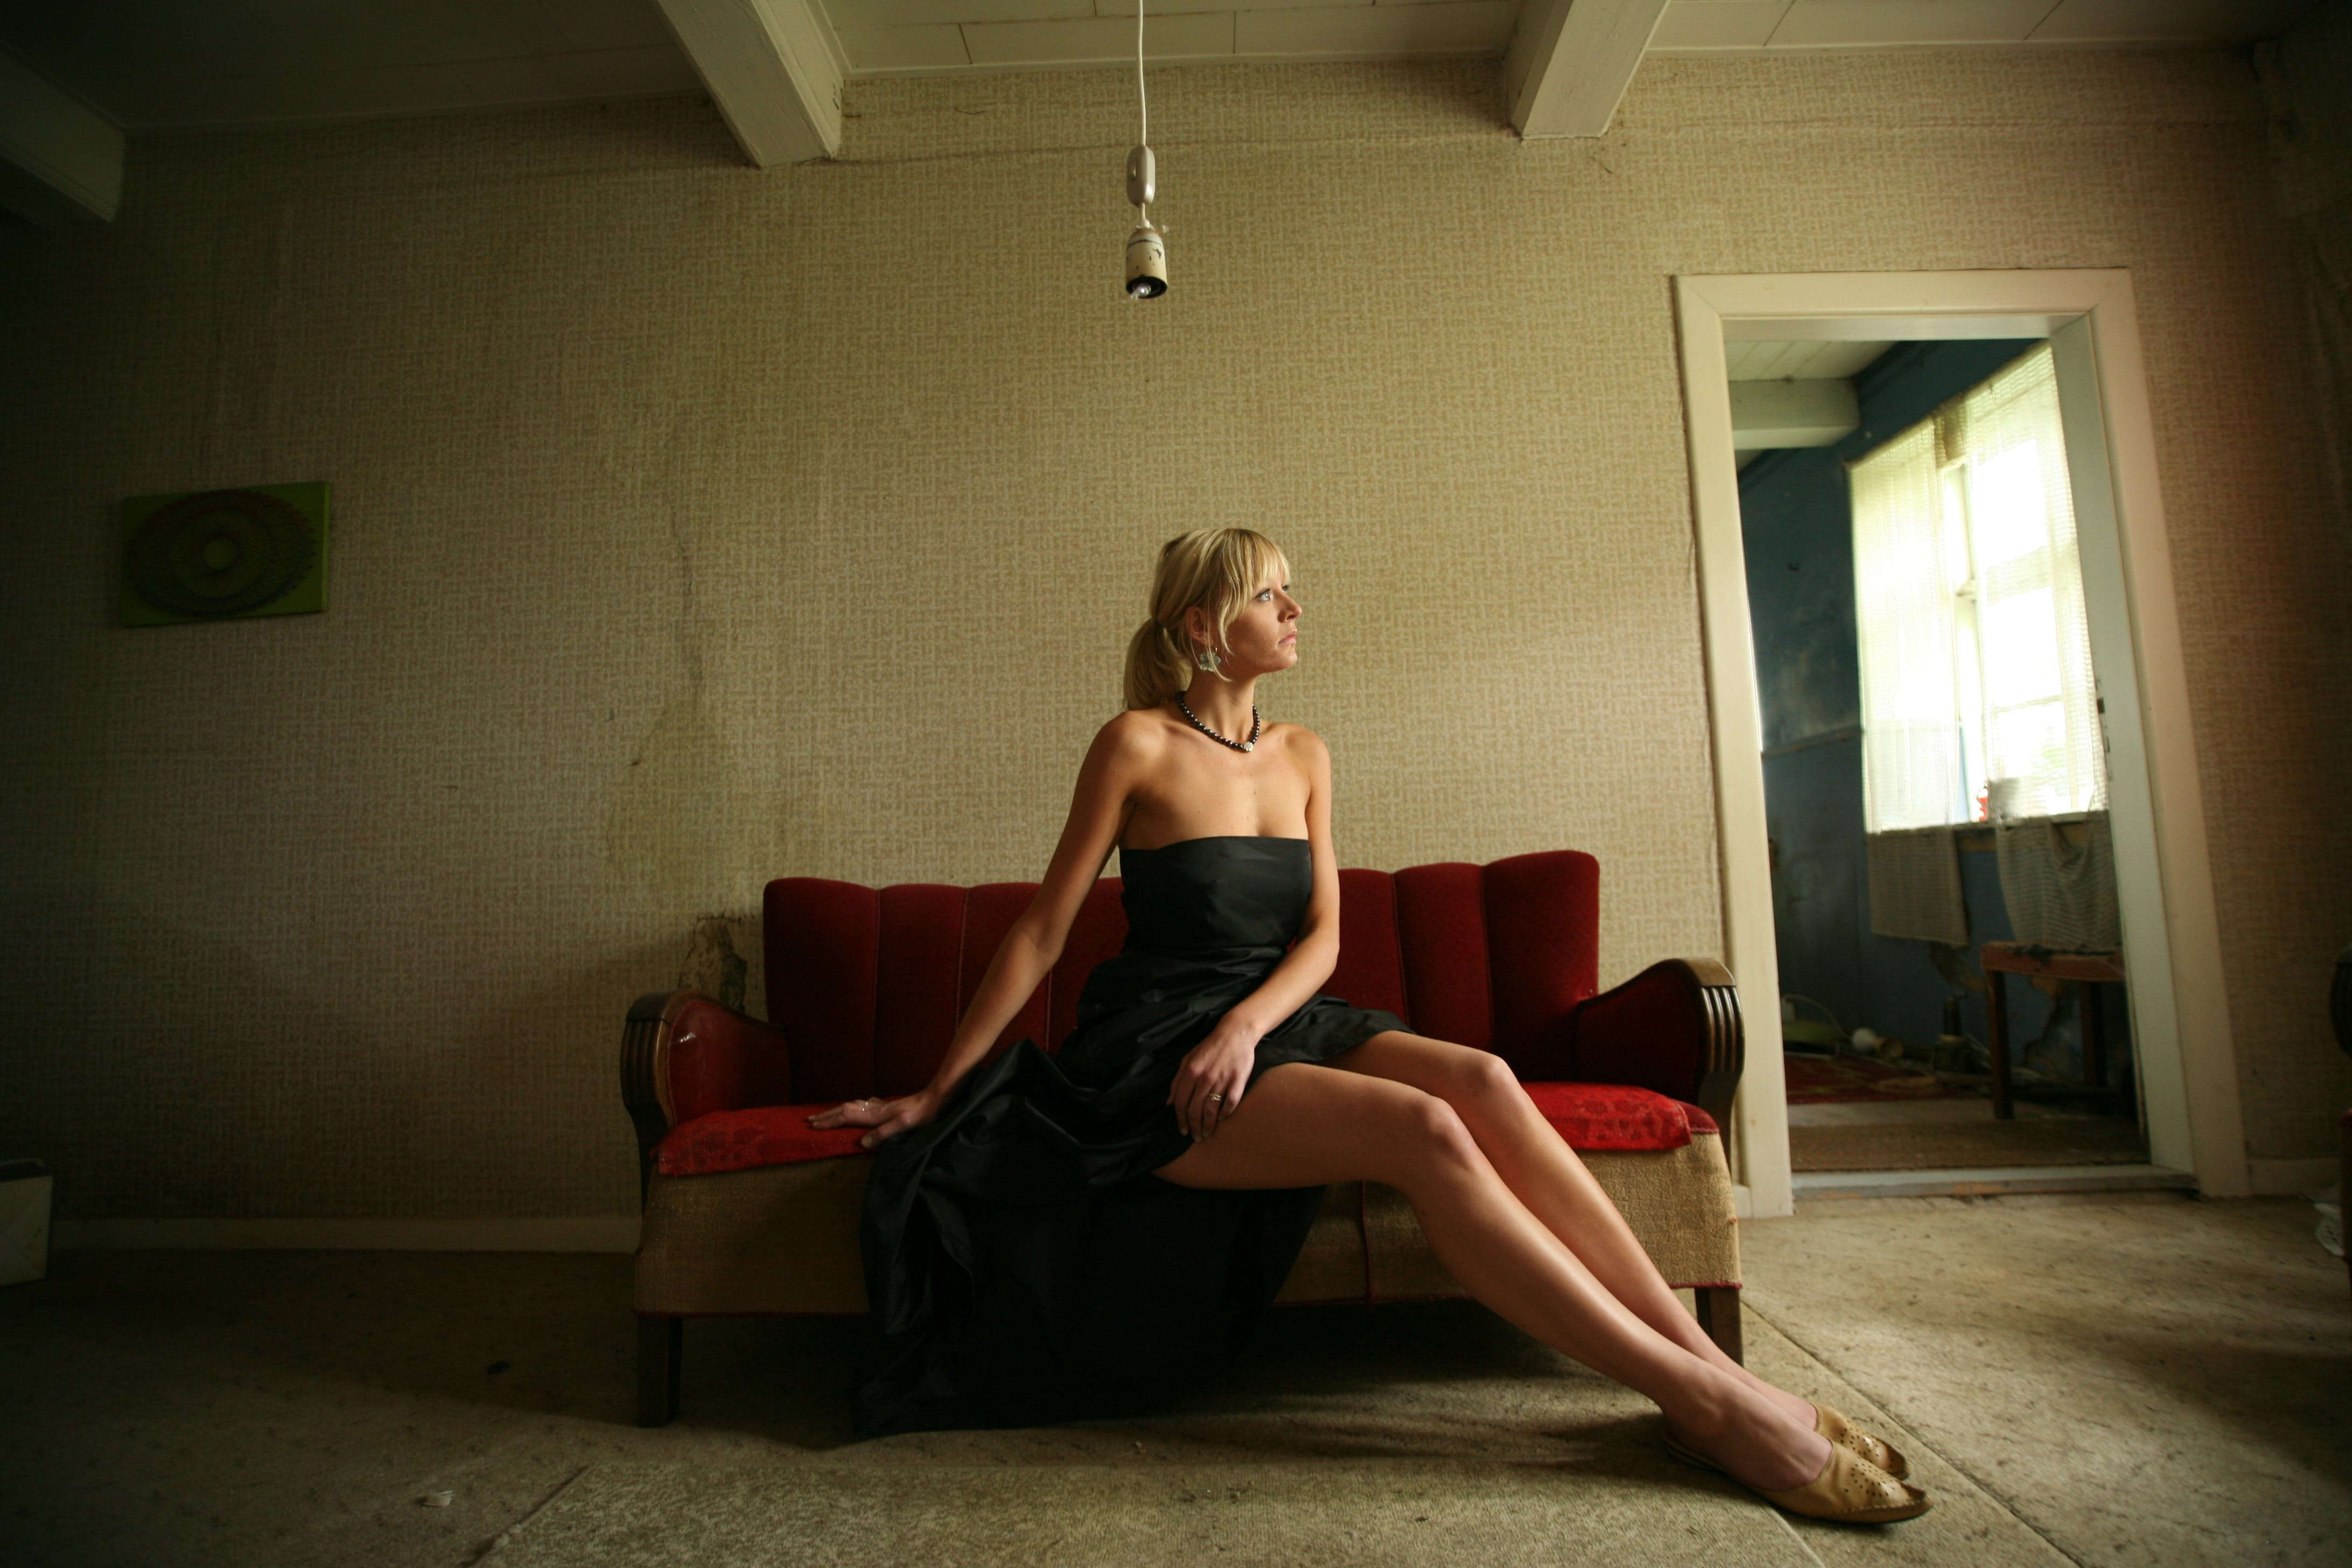 Women's Black Strapless Dress Sitting on Couch